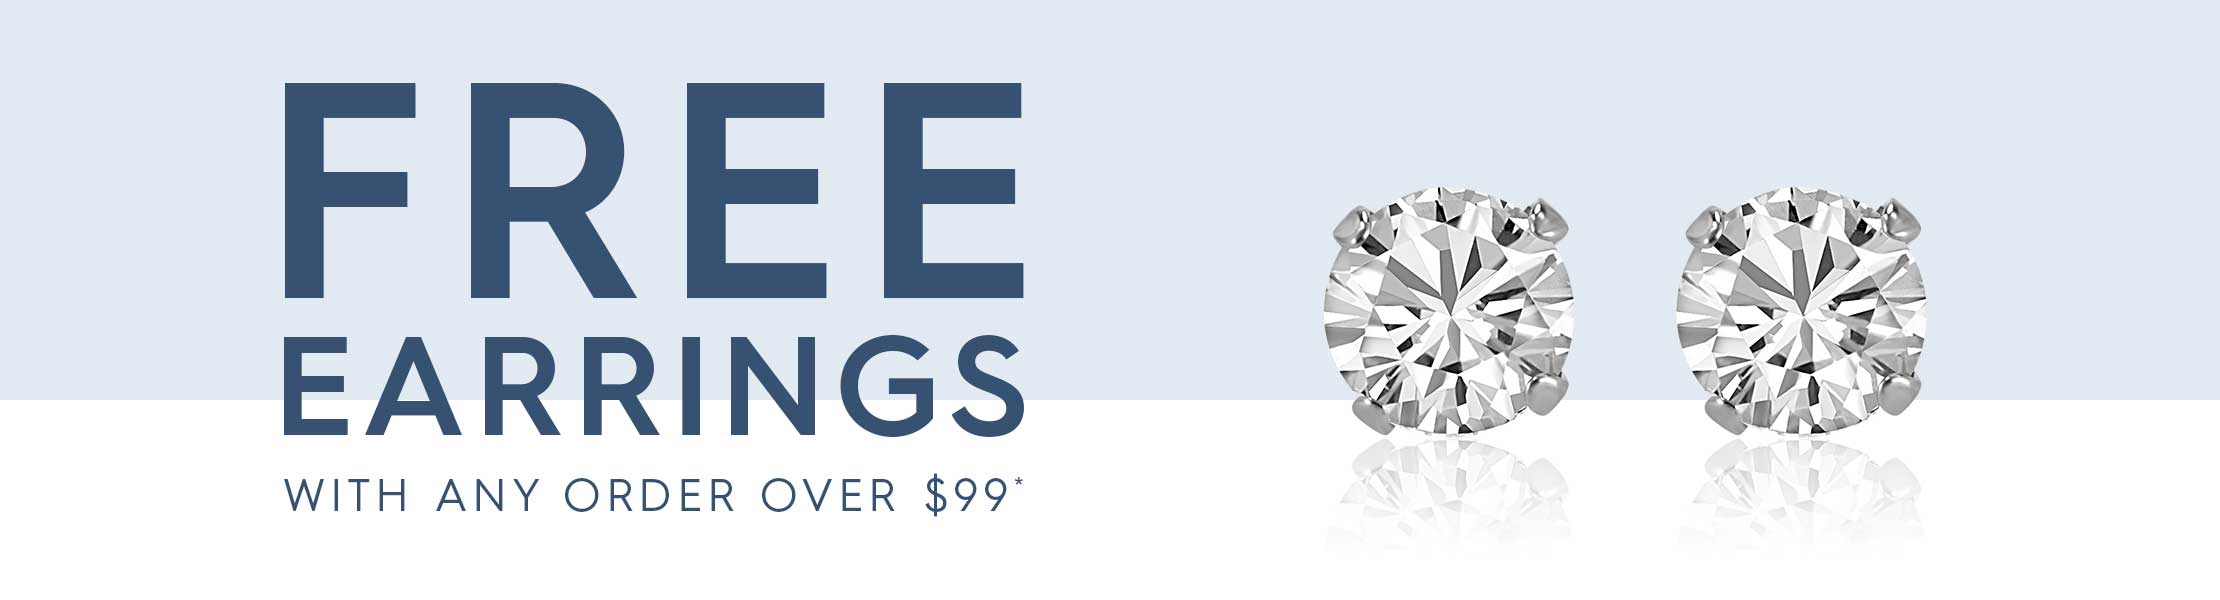 Free earrings with any order over $99